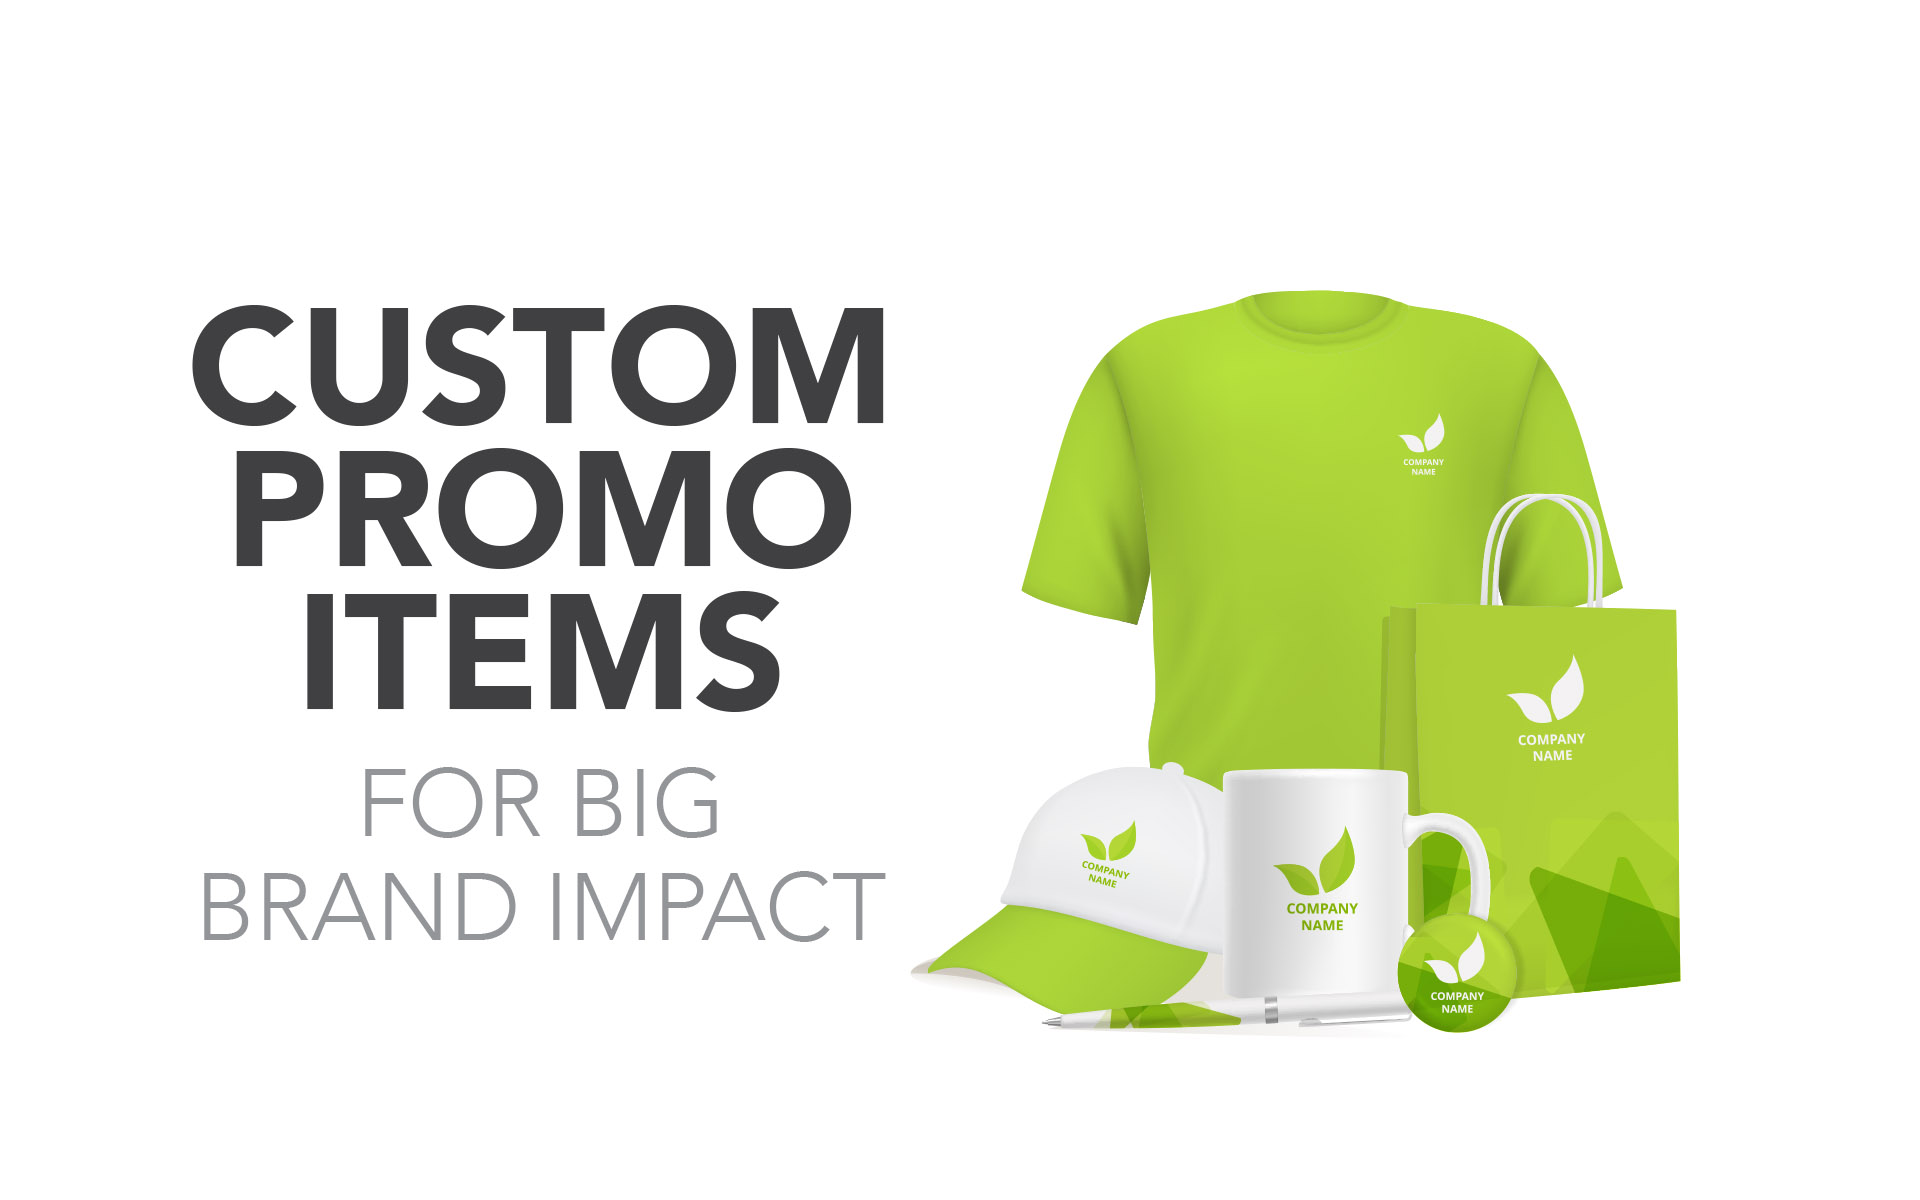 Custom Promo Items